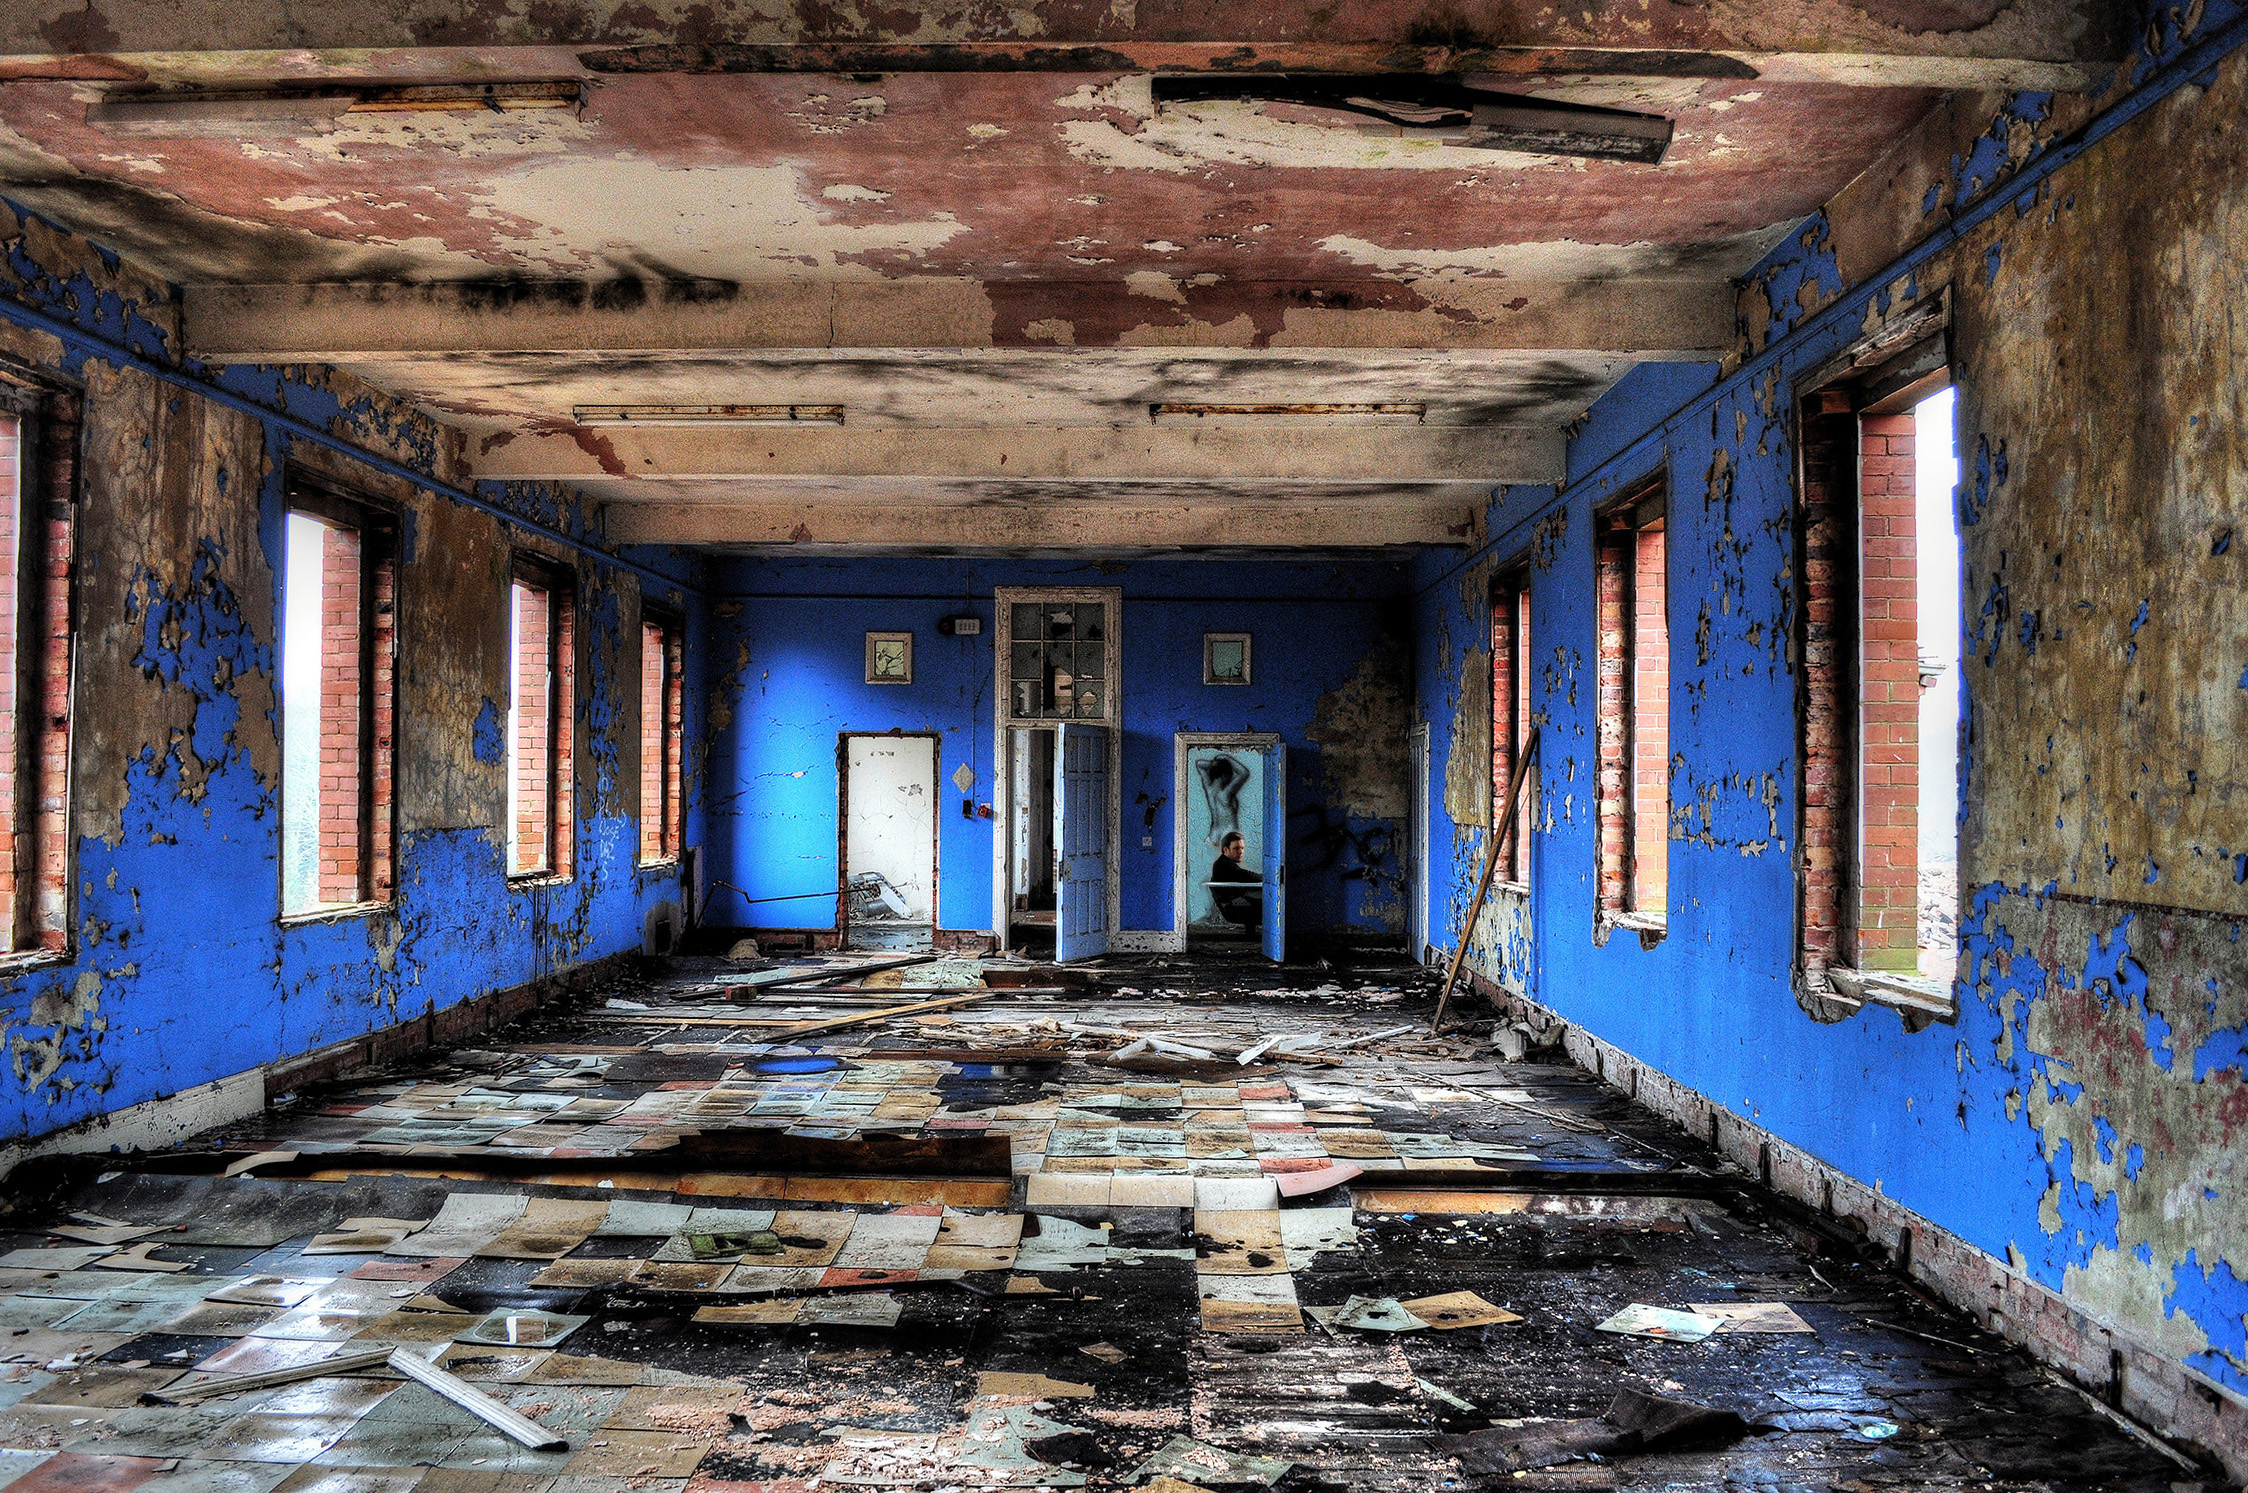 Hellingly Asylum - This one was pretty destroyed by the time I got there.I was obsessed with this room with the bathtub.The undulating multicoloured floor tiles were spectacular and the one peely blue door into the room was beautiful.This place housed 10,000 inmates at its best. A fully working.self sustaining village for the outcasts and unwanted.